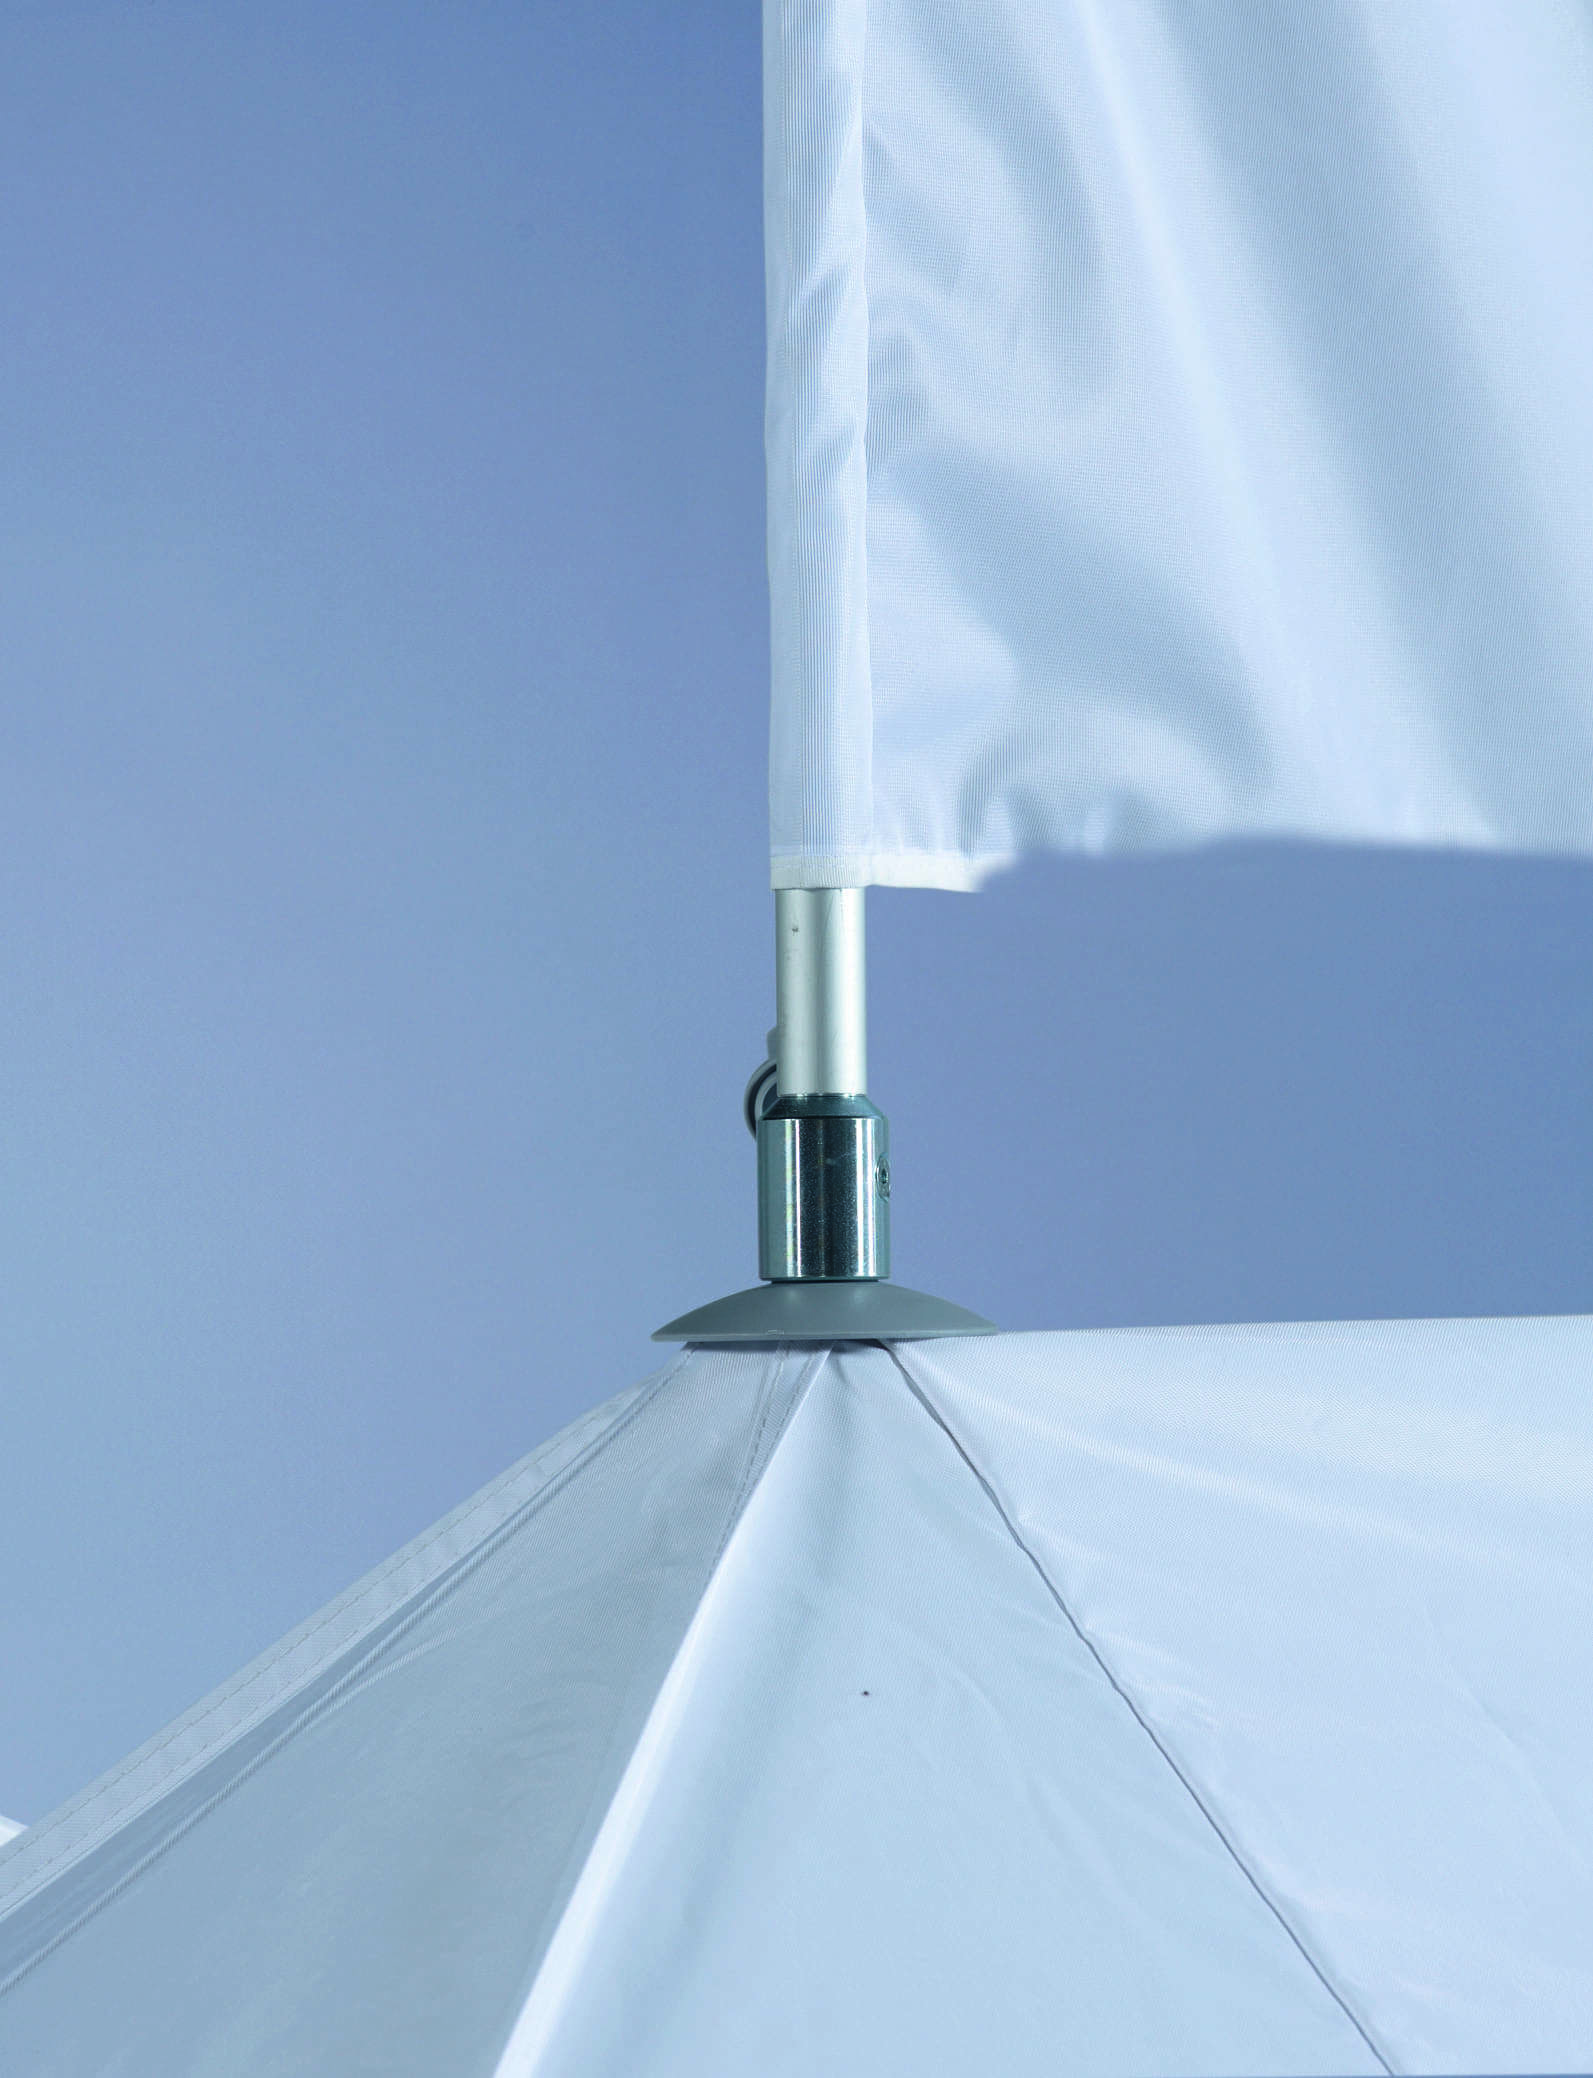 <p>Accessories – Flag & Flag Pole</p> <p>Possible in every tent, apart from the Shop with 4 awnings. A great way of gaining extra visibility and awareness of your business or campaign at the event you are attending.</p>